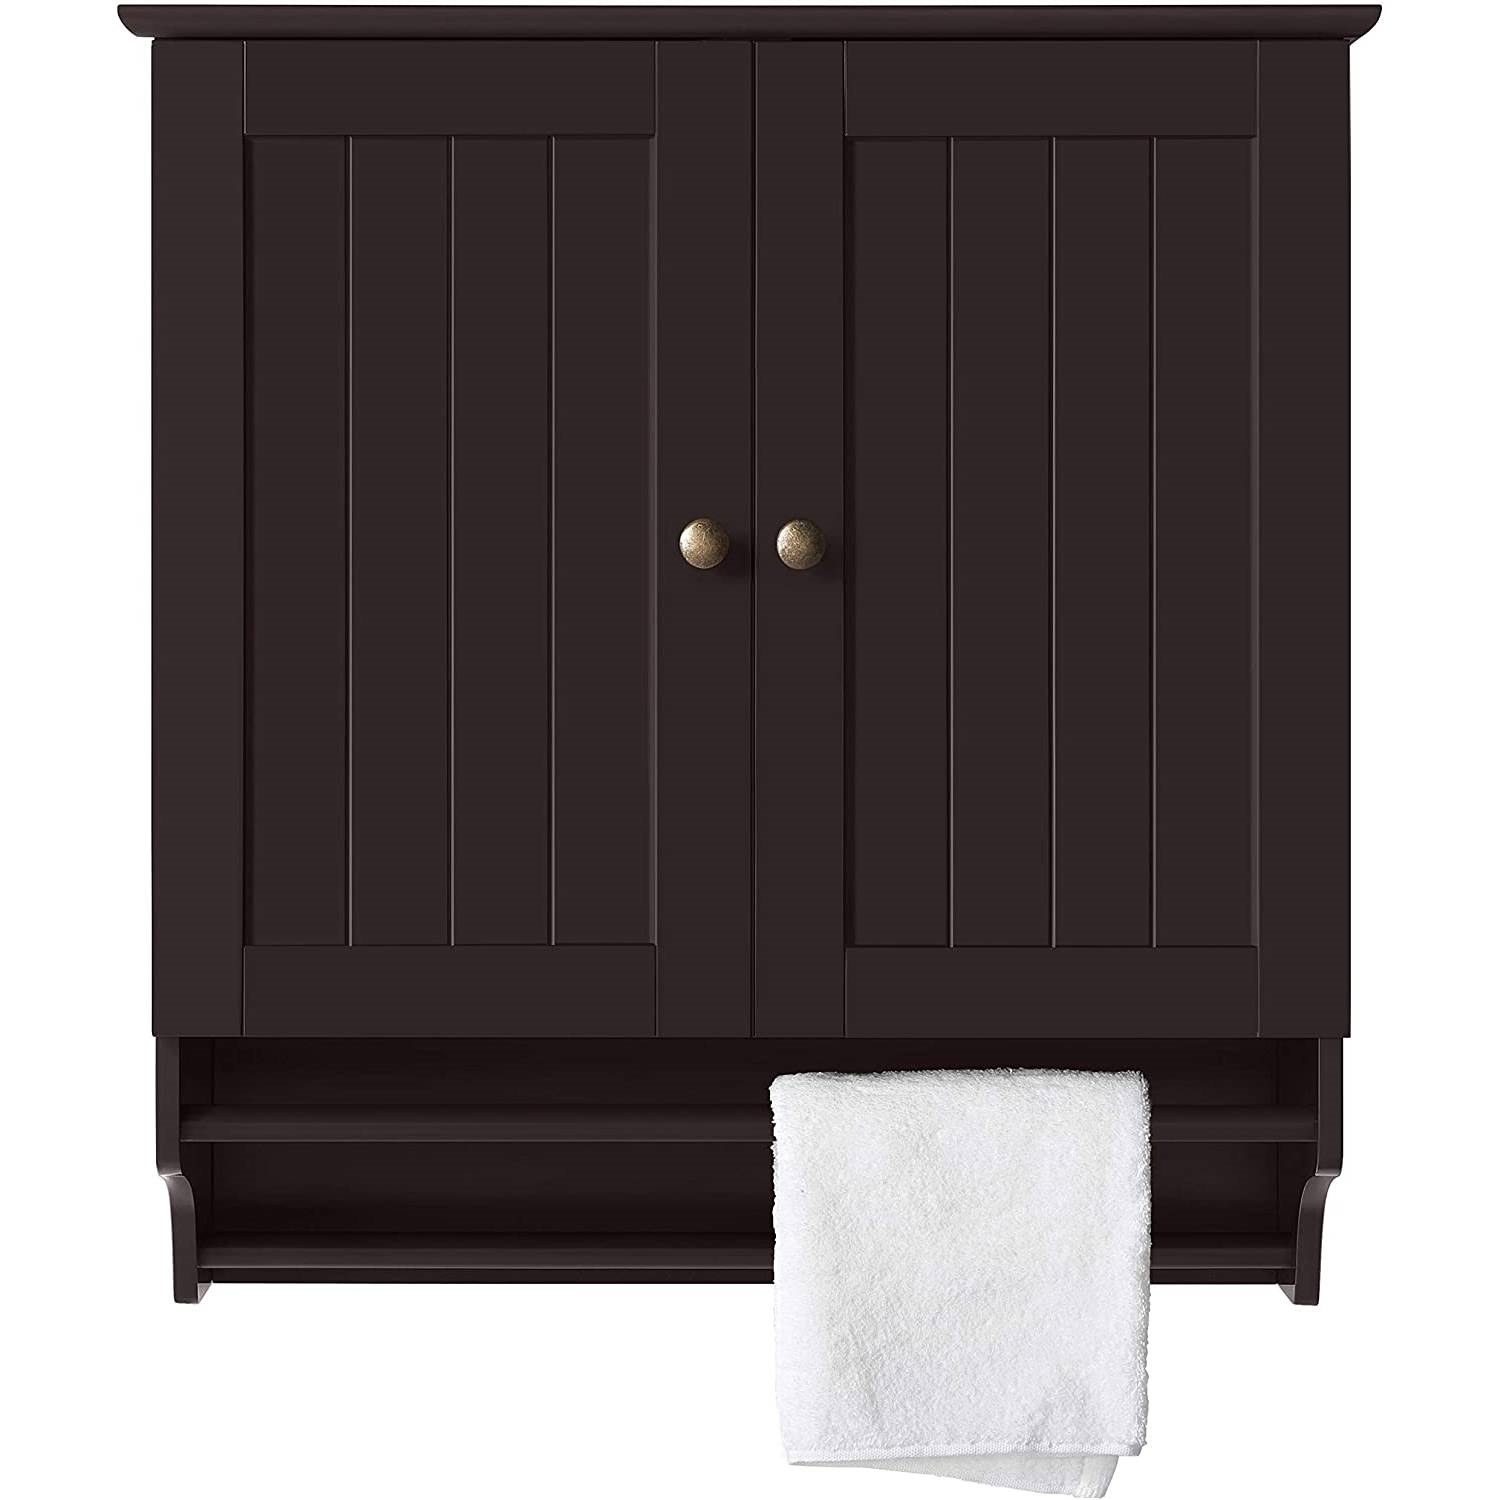 bar perfect gallery towel and elegant interior in design remodeling cabinet exterior for wall home cabinets bathroom with